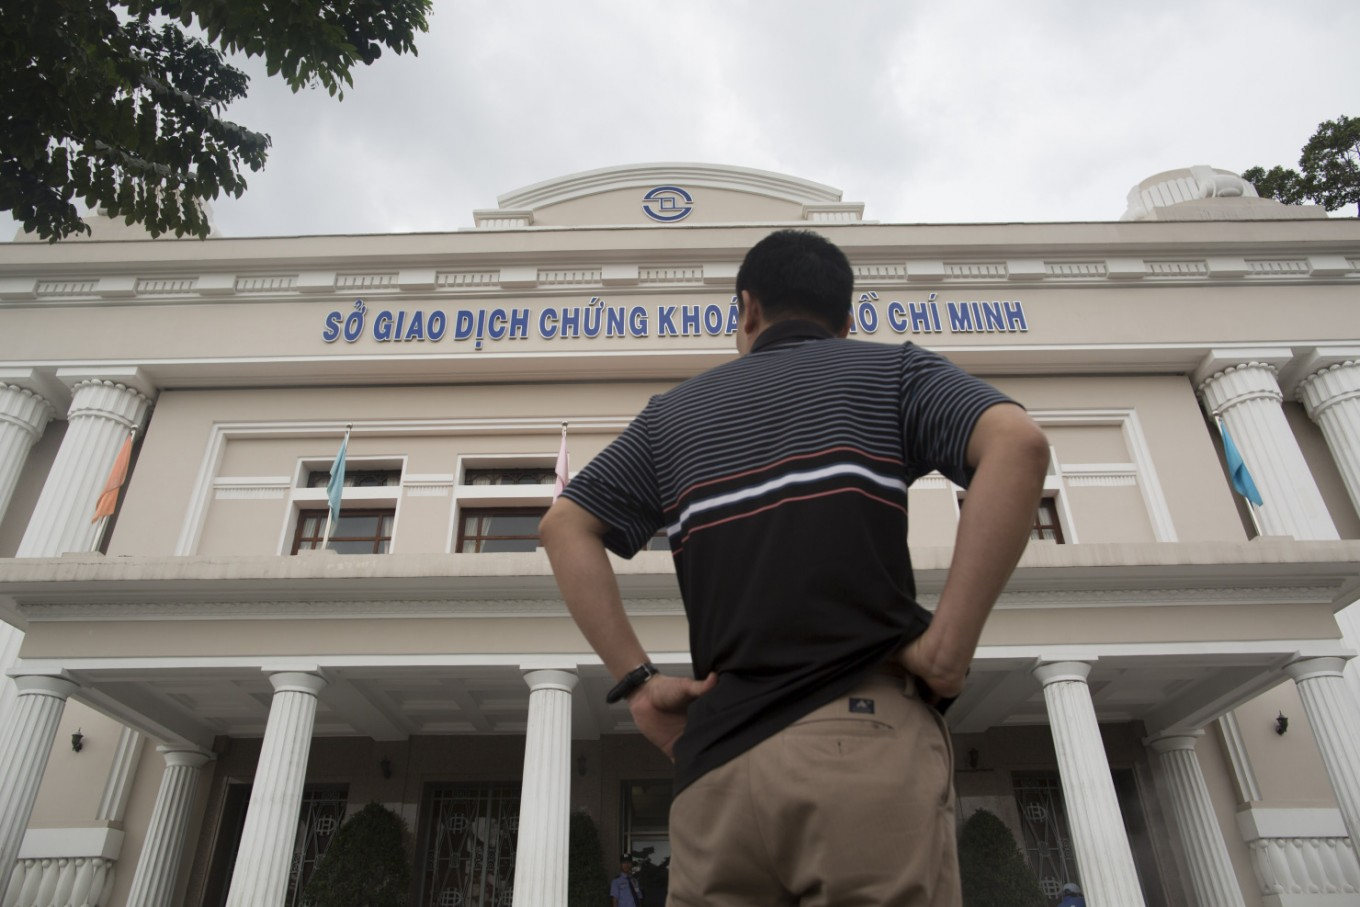 Vietnam's biggest stock exchange halts trading after malfunction